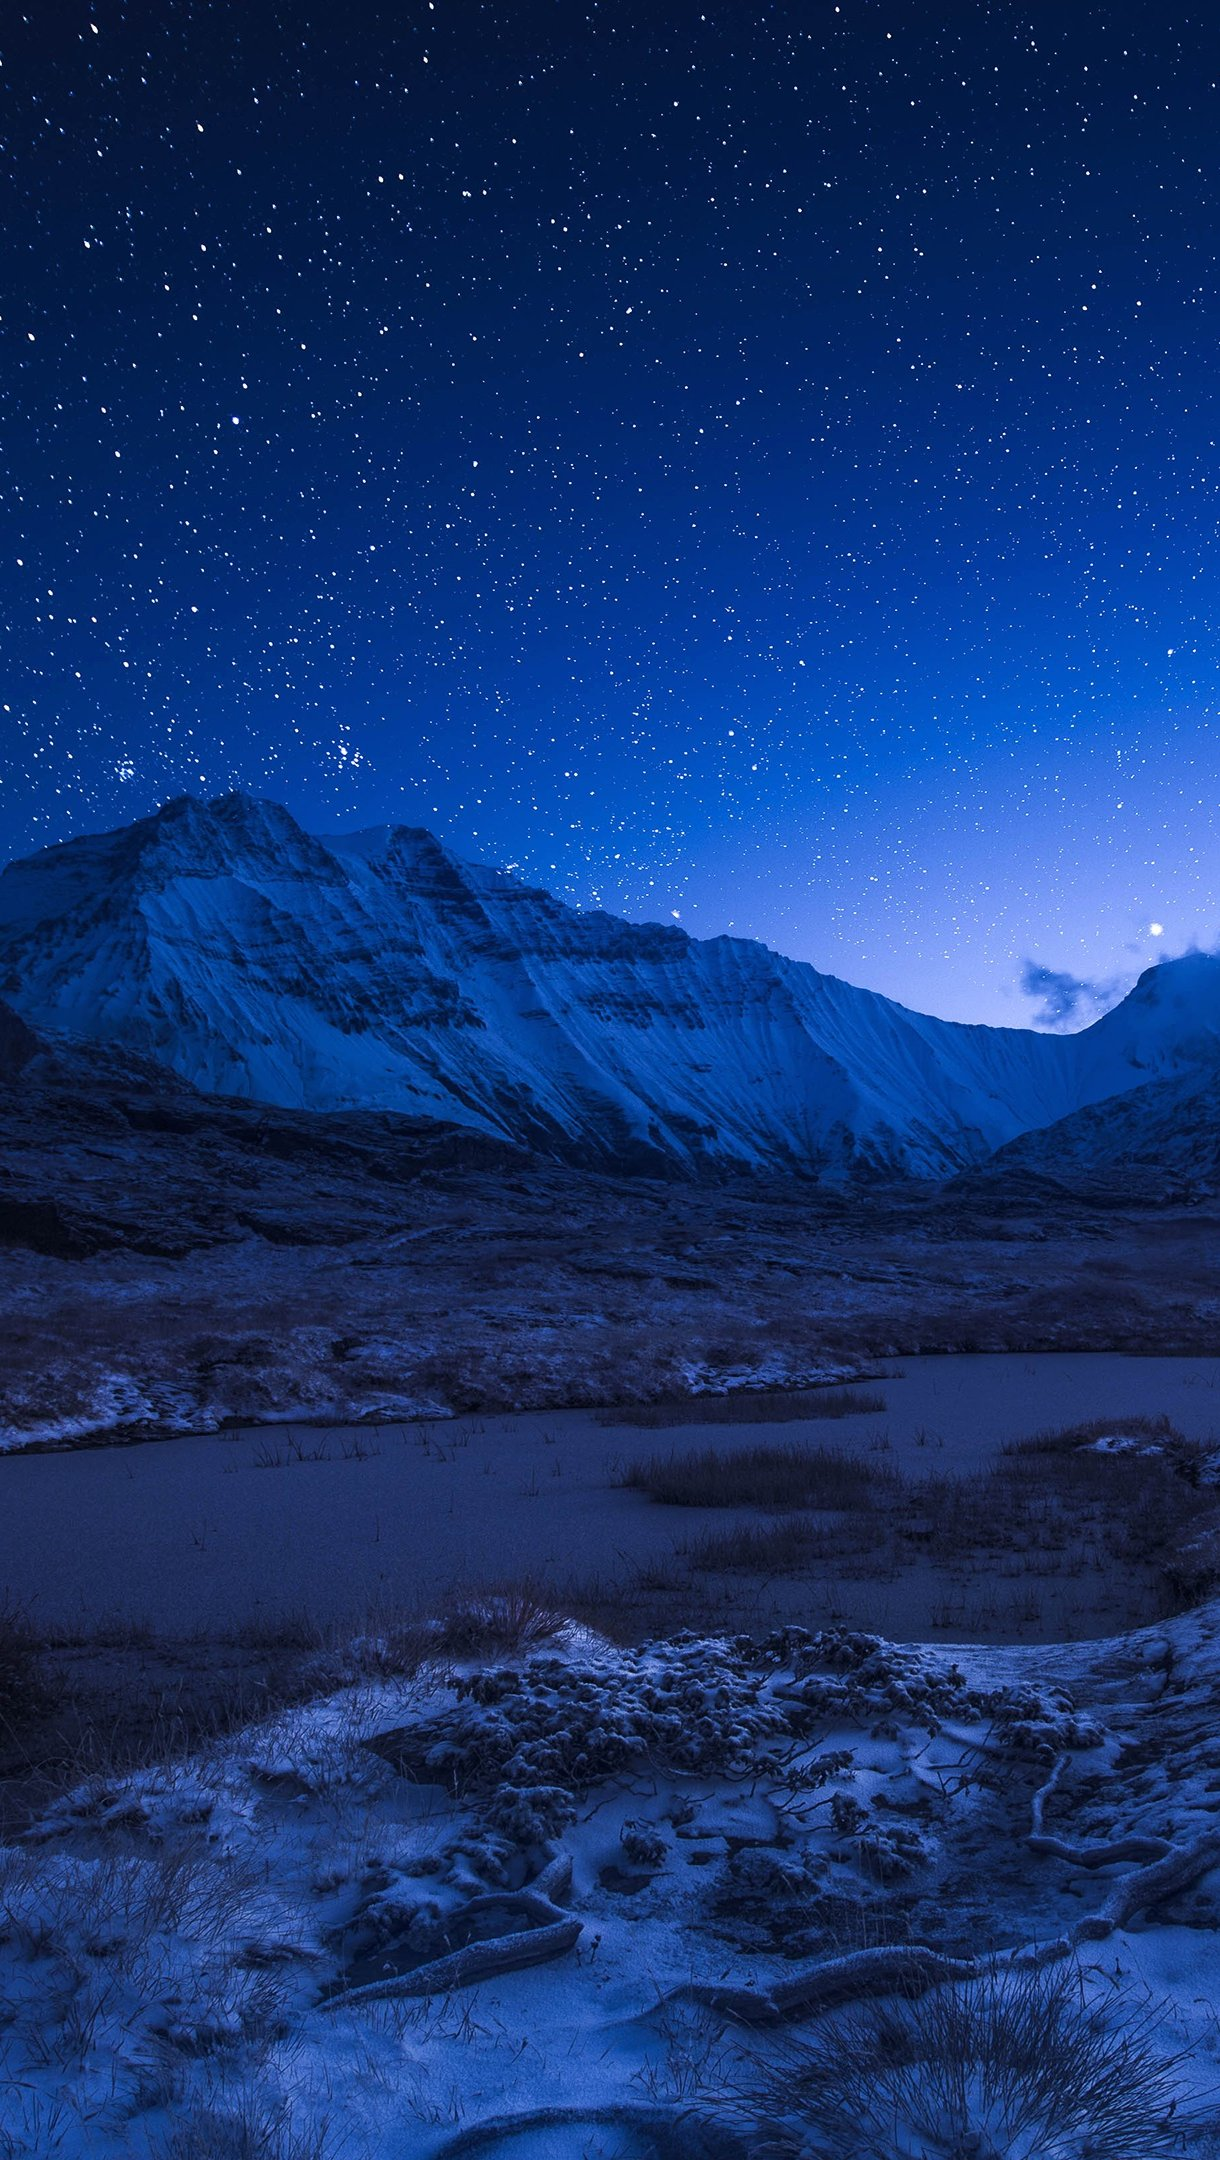 Wallpaper Starry night sky above the snowy mountains Vertical